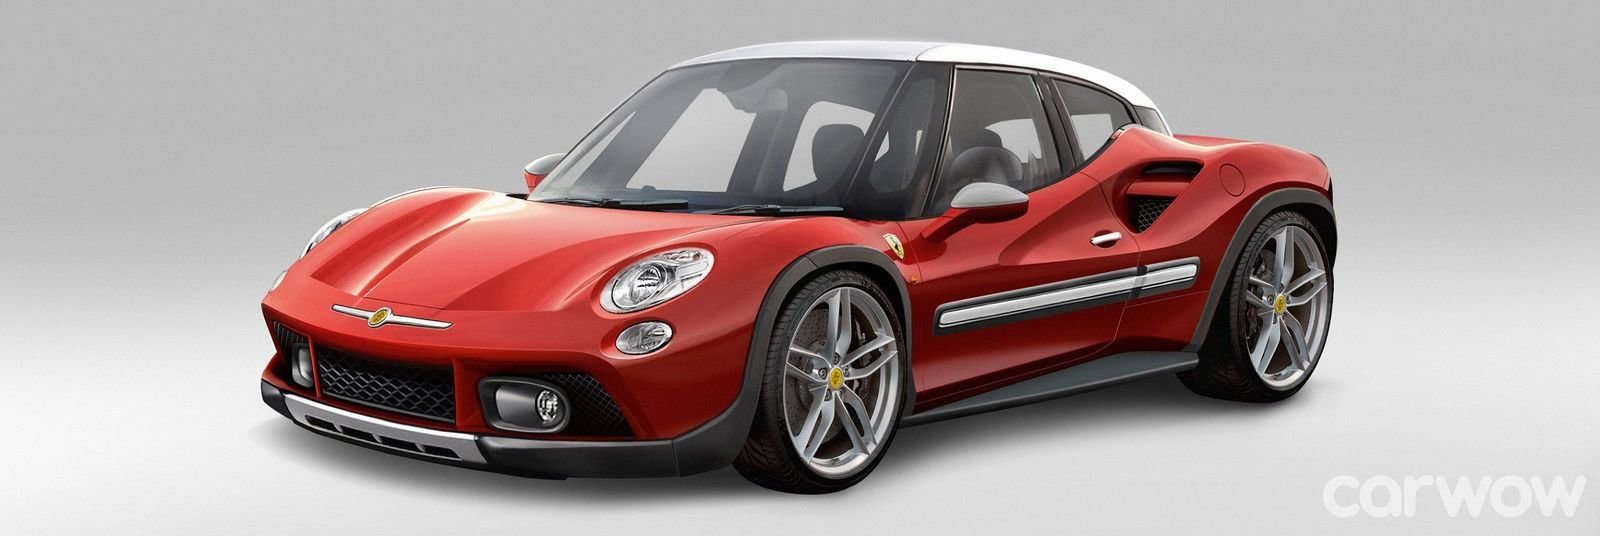 New Ferrari 488 Becomes Fiat 500L And Ford F 150 Raptor Merges On This Month